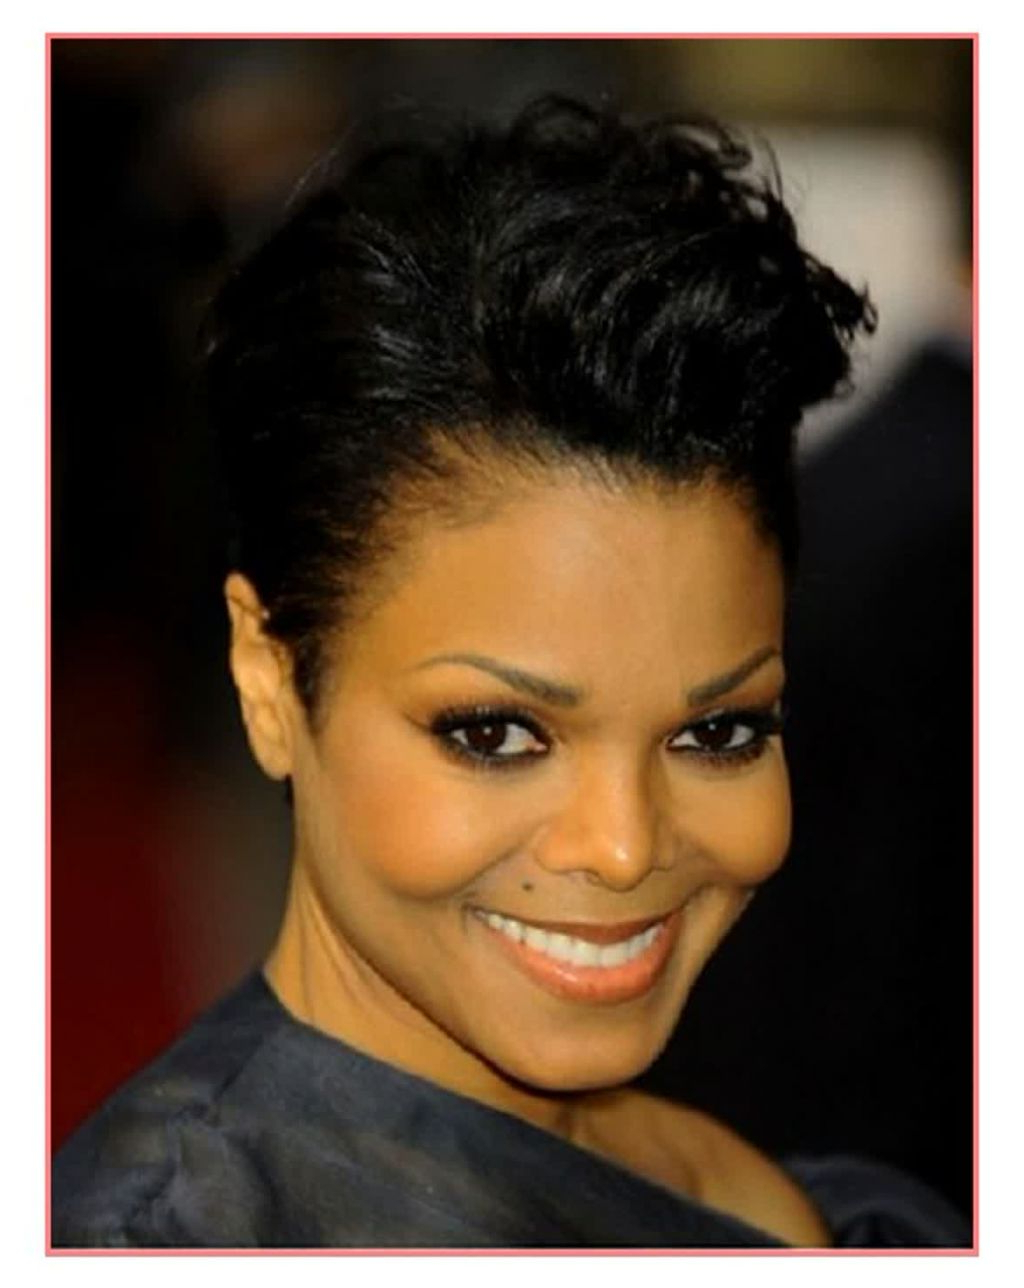 ? 24+ Inspirational Black Short Hairstyles For Round Faces: Awesome With Regard To Short Hairstyles For Black Round Faces (View 21 of 25)